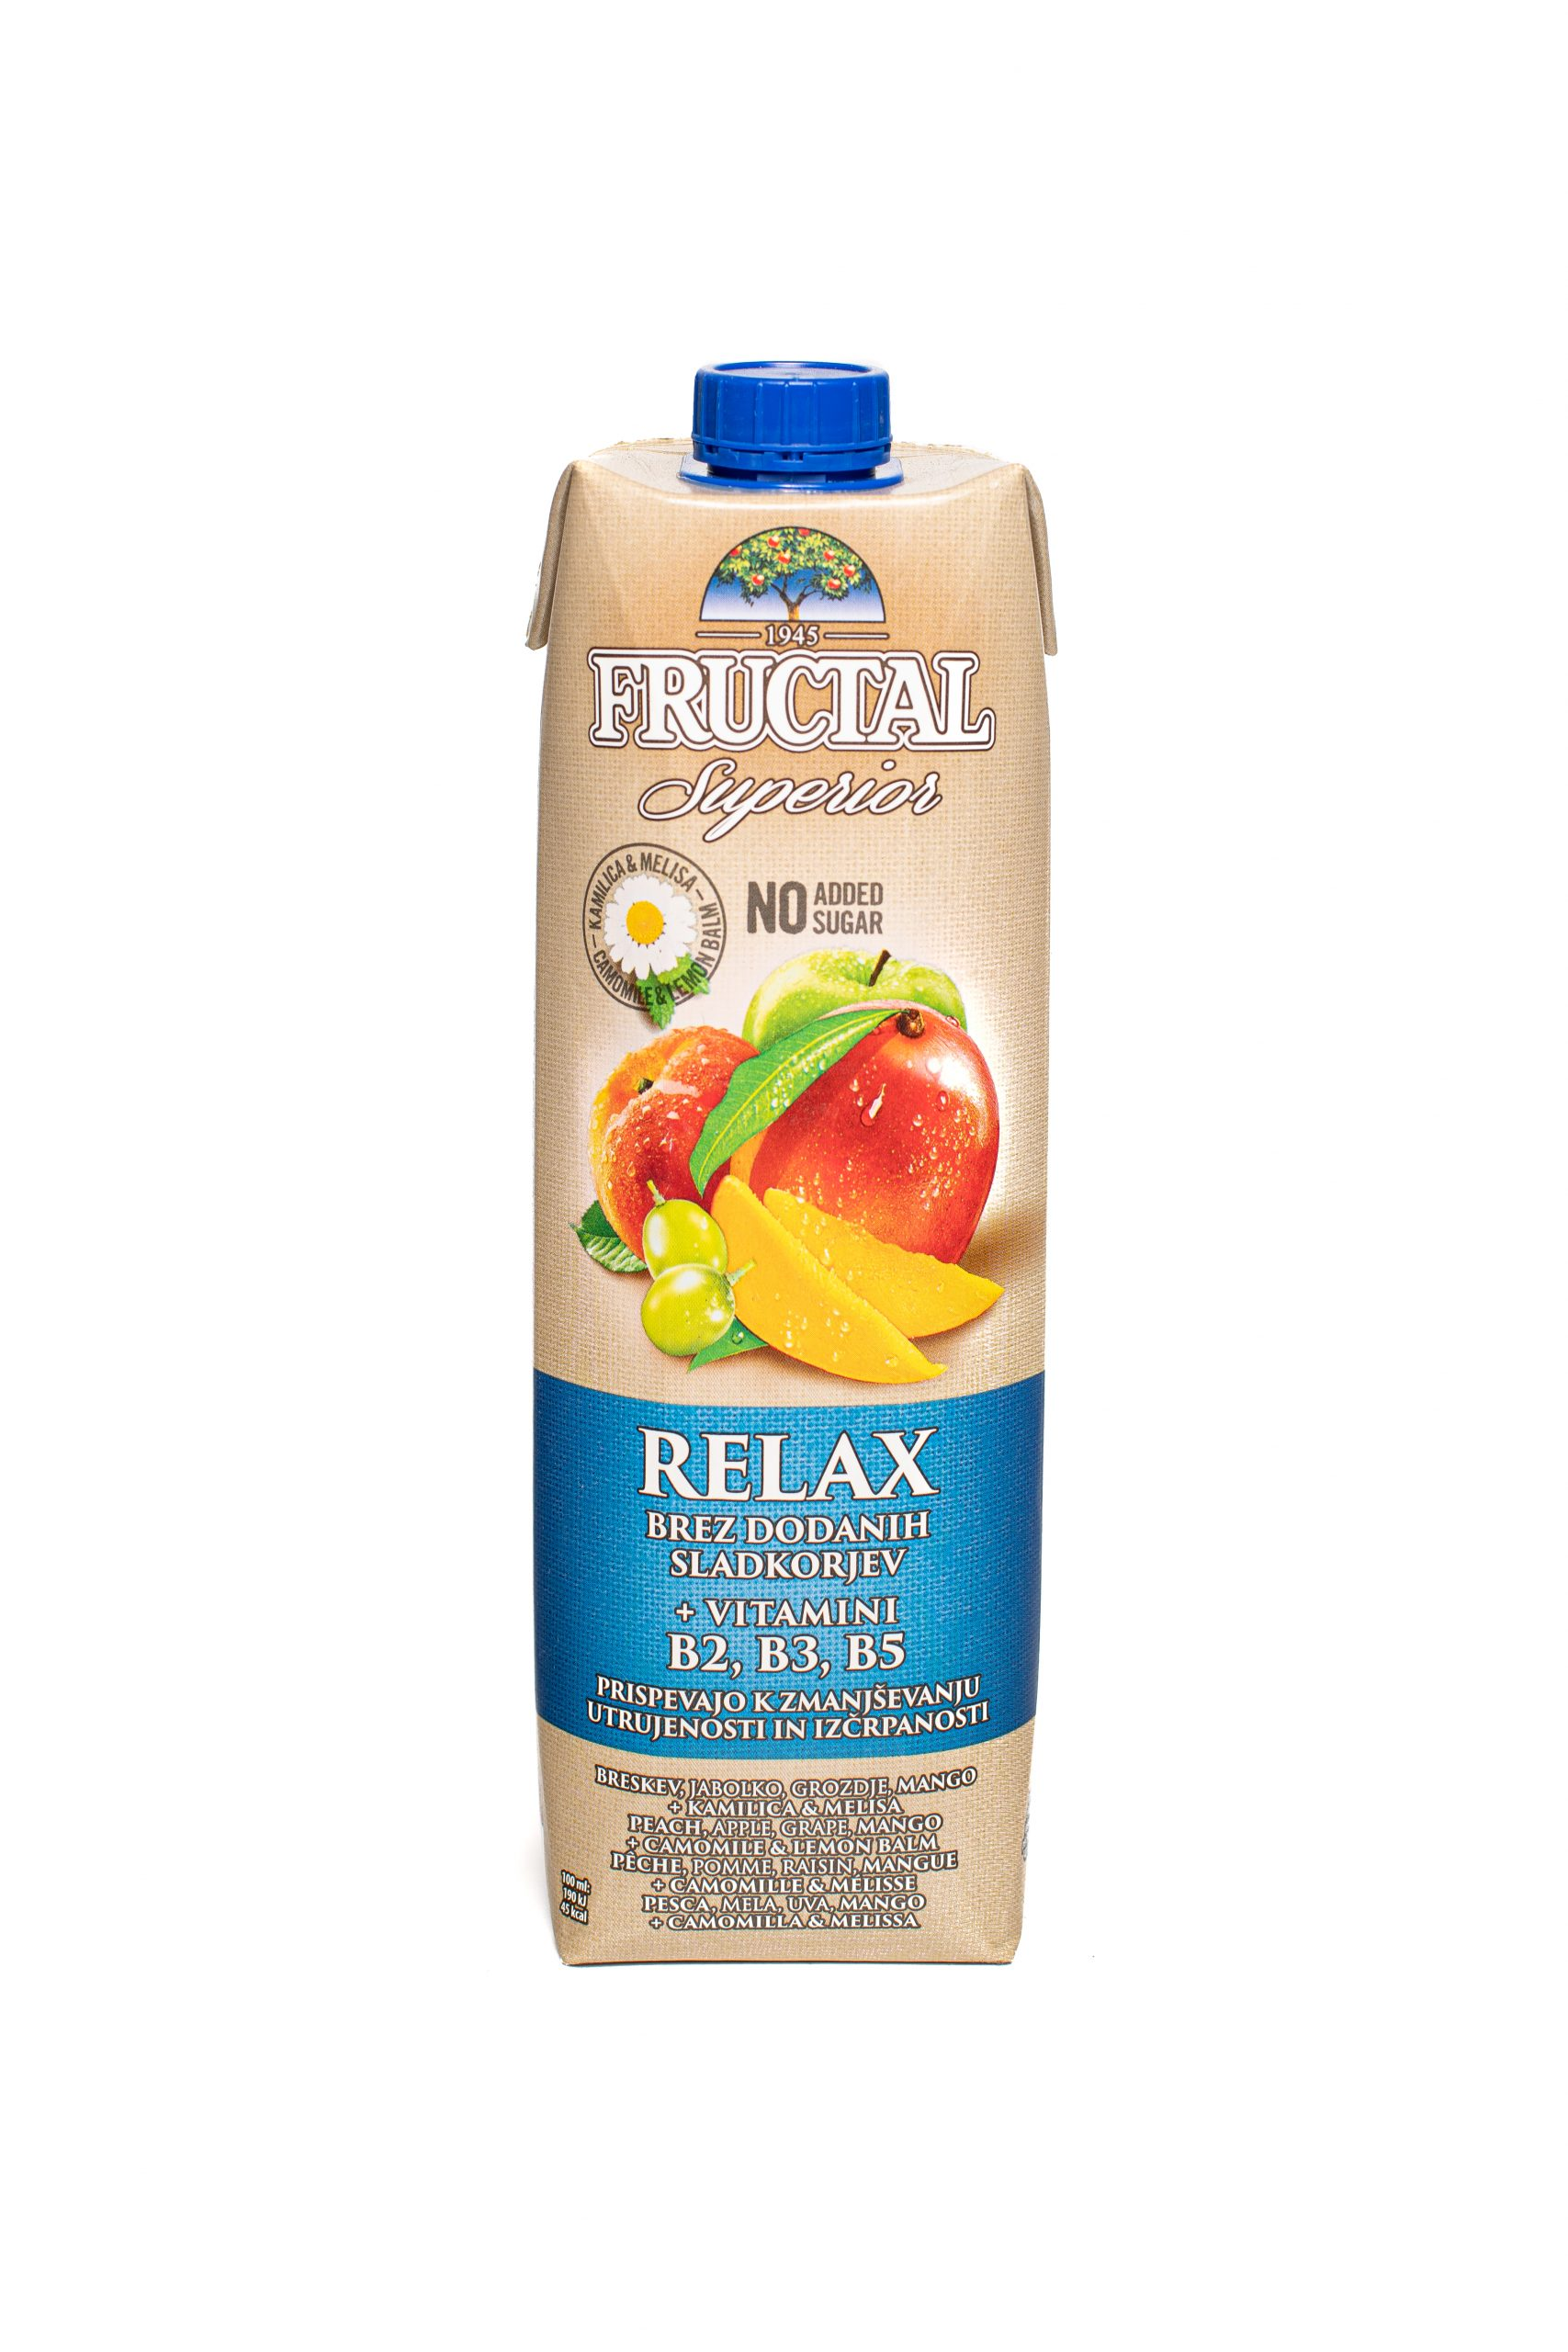 Fructal Superior Organic | 1L | No Sugar Added | Relax